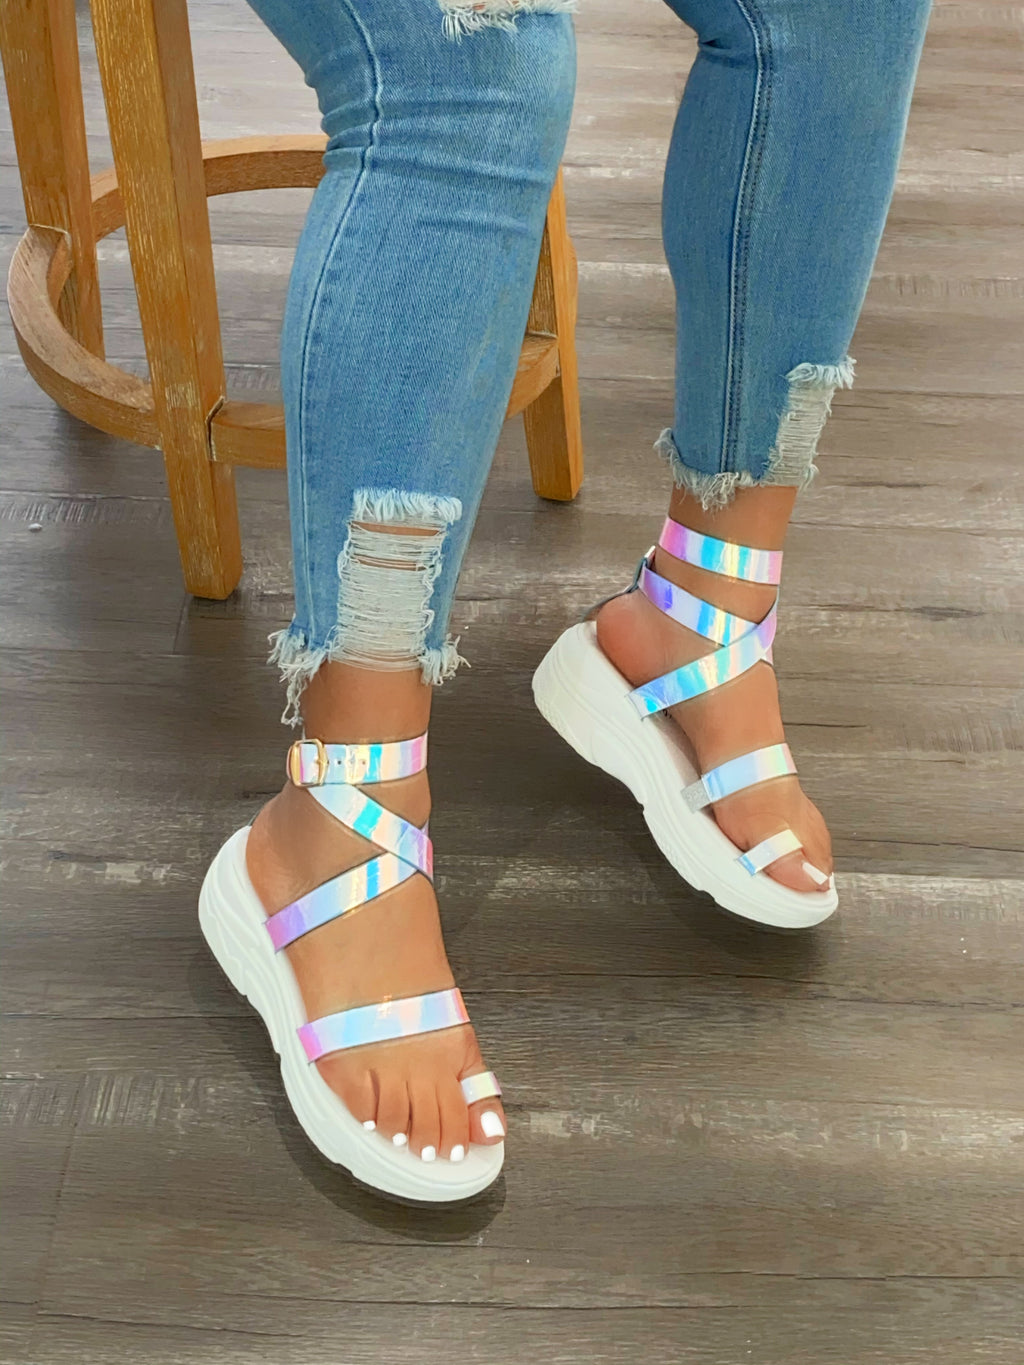 Susu Sneaker Sandals - Hologram